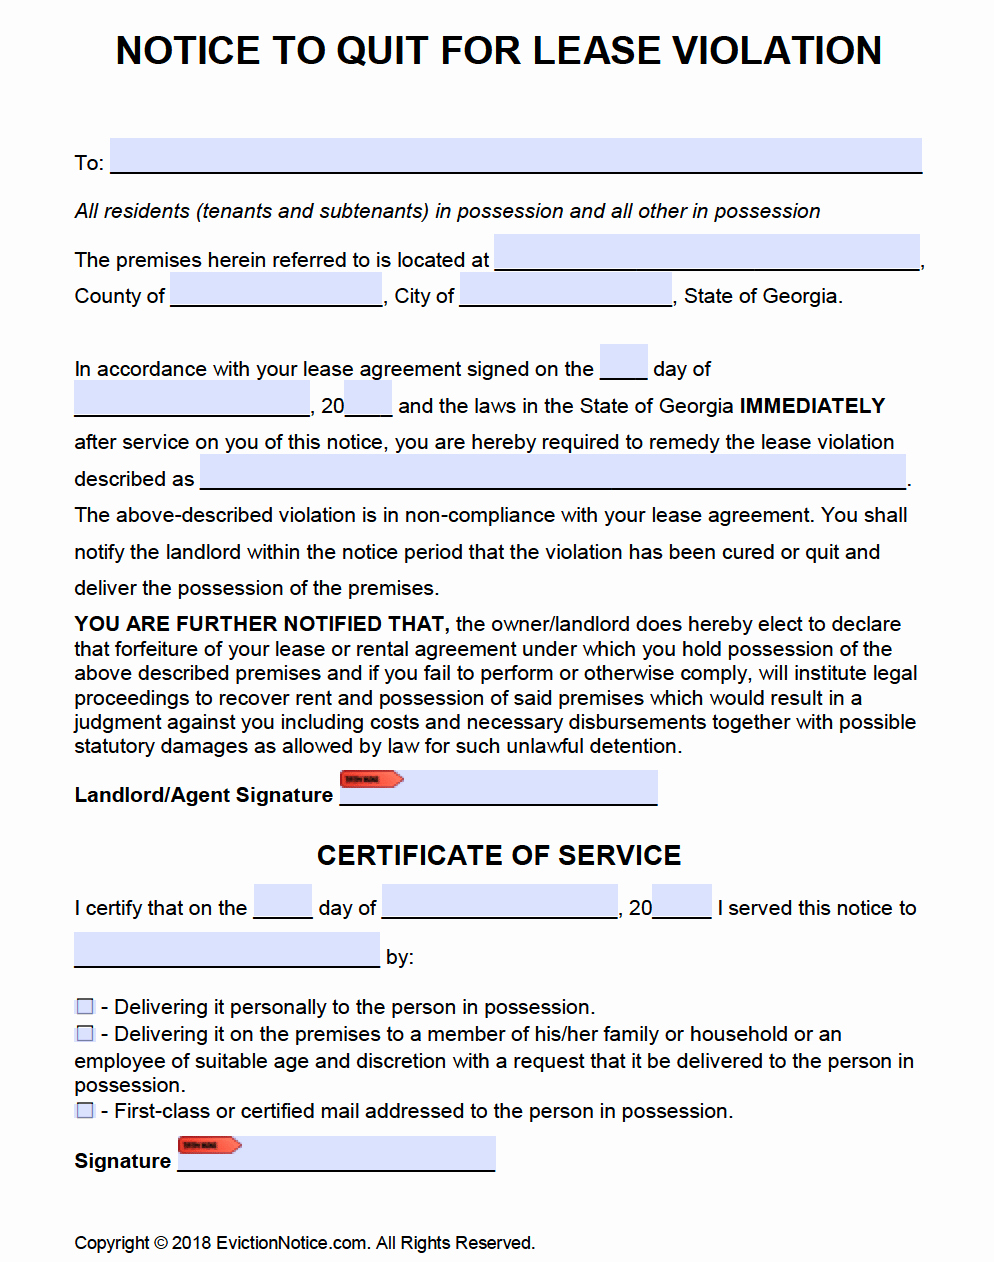 Georgia Eviction Notice Template Best Of Free Georgia Eviction Notice Templates